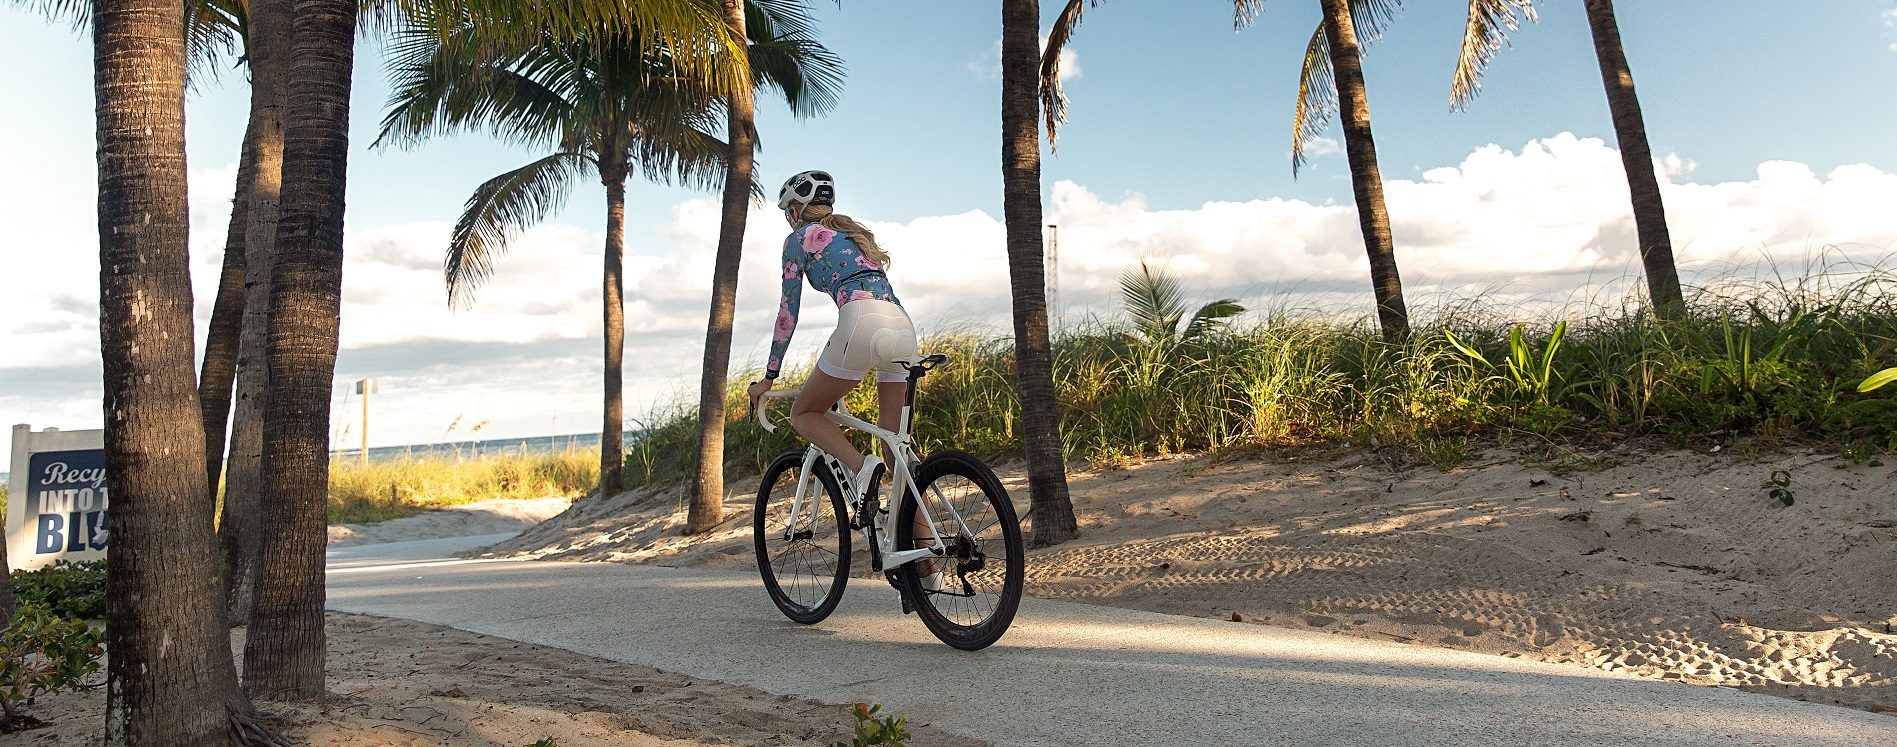 Nadezhda Pavlova riding bike on beach road in Florida